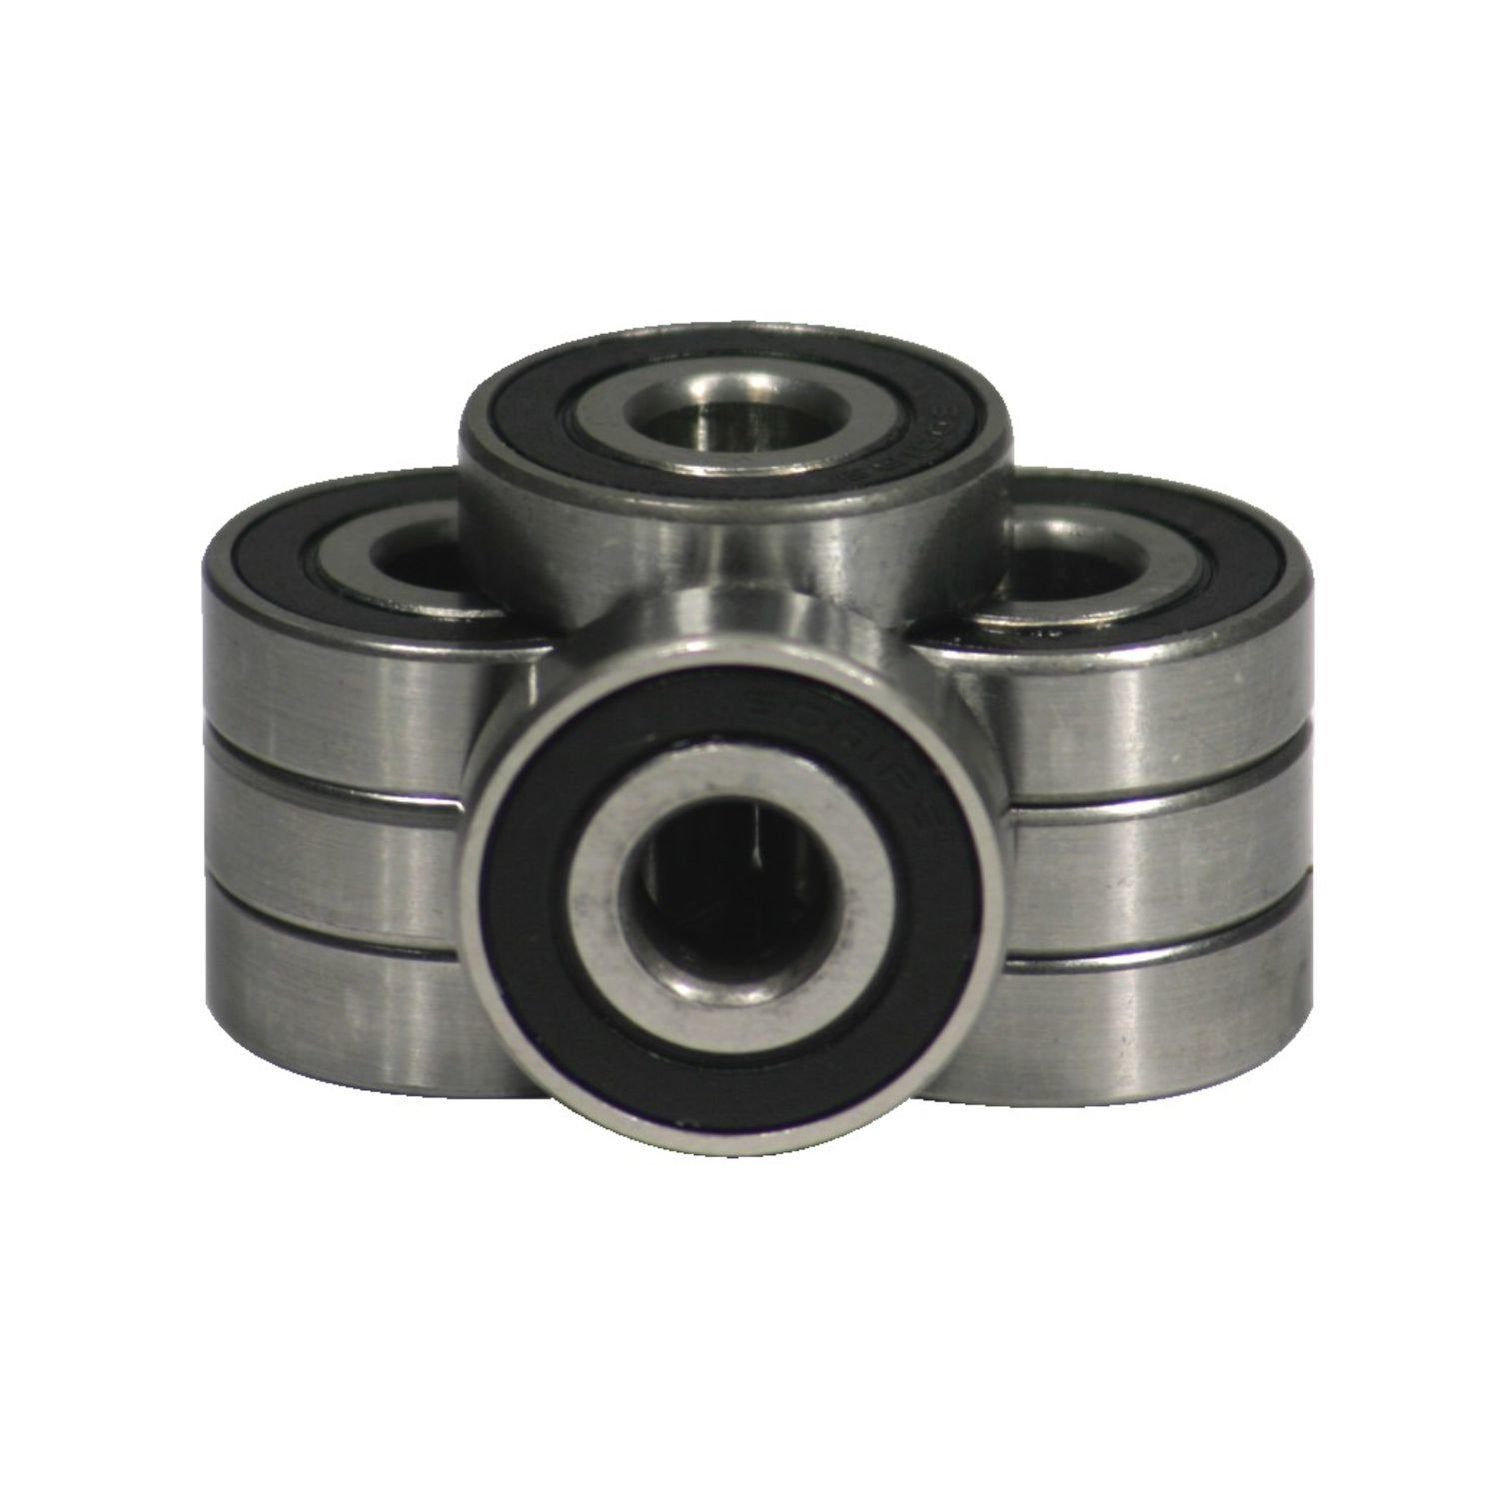 Image of MTBD Bearings - 12mm X 28mm (8)